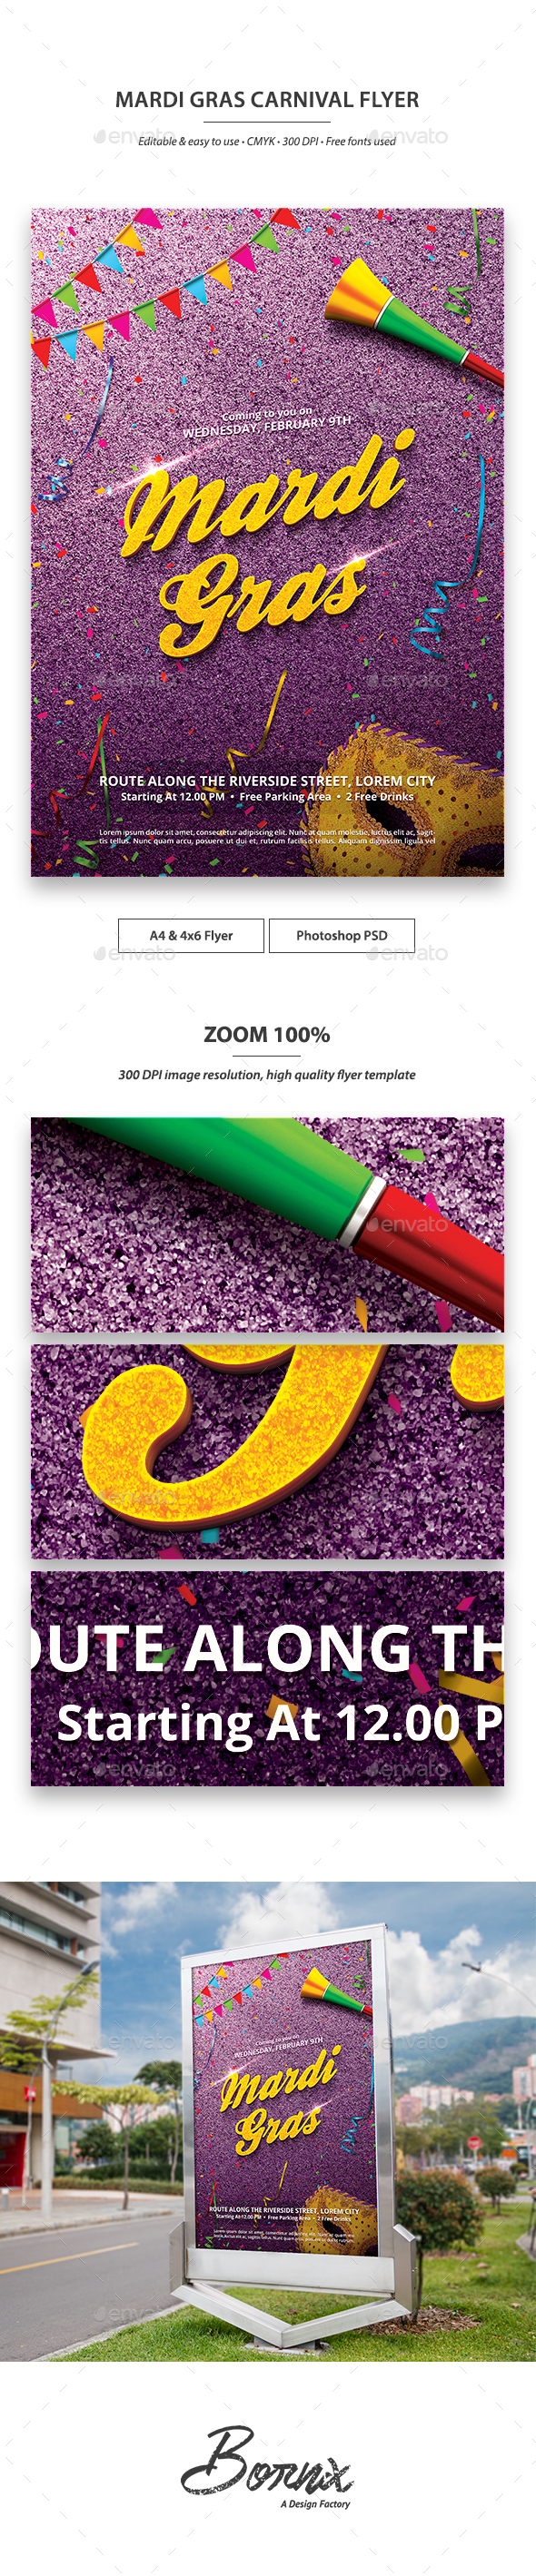 Mardi Gras Carnival Flyer Template - Events Flyers